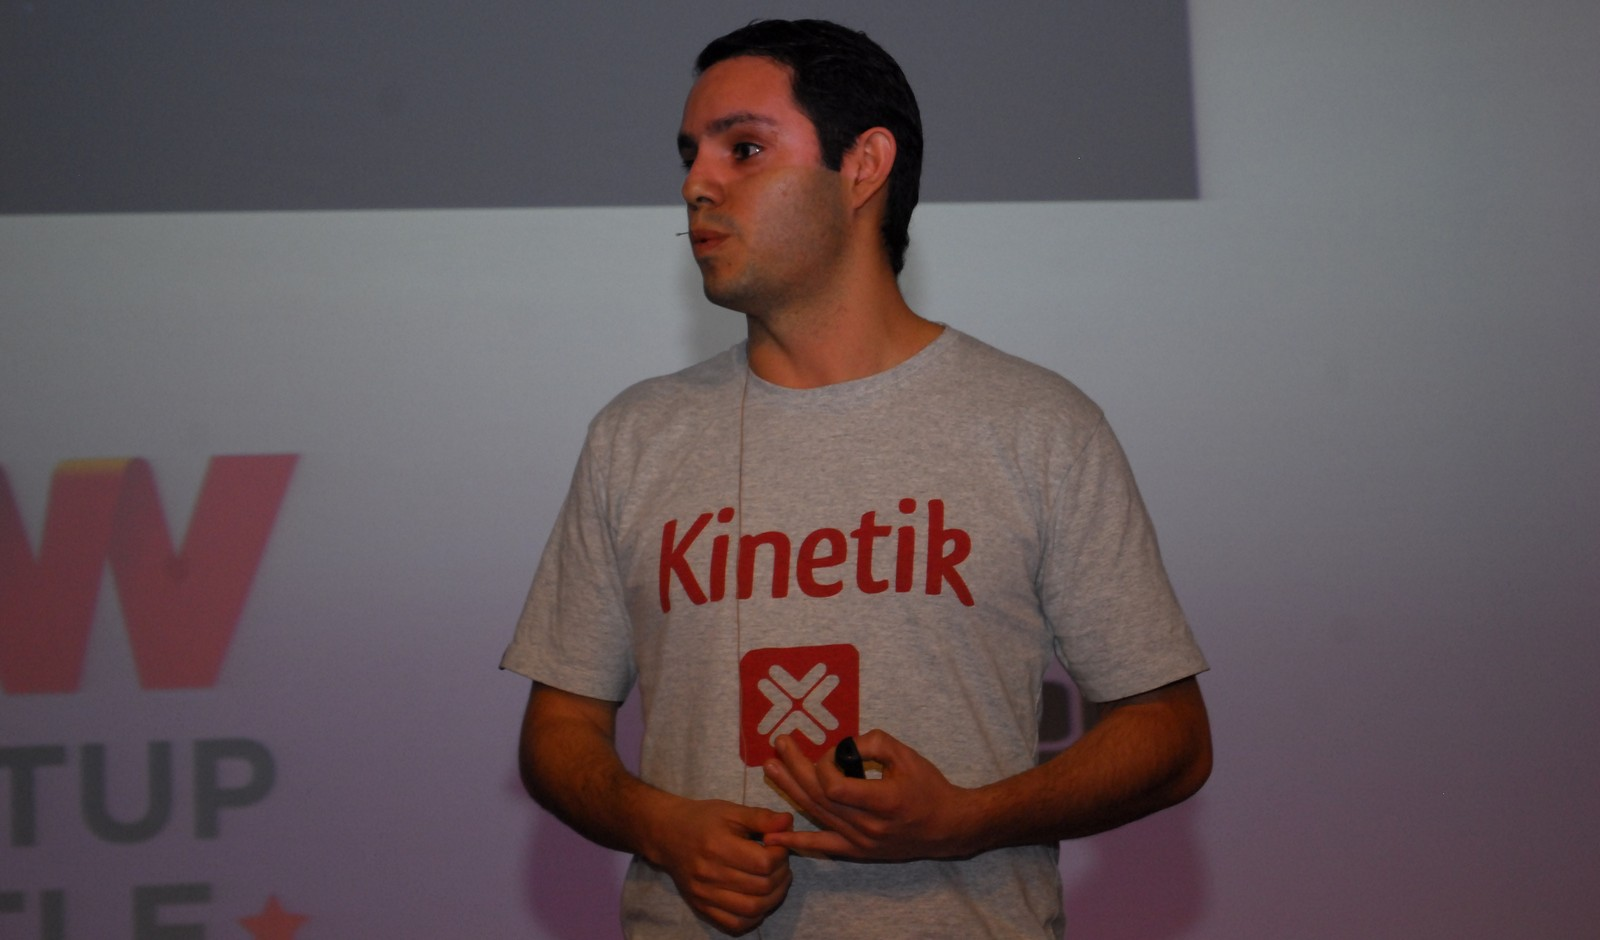 kinetik ceo raul moreno at TNW conference